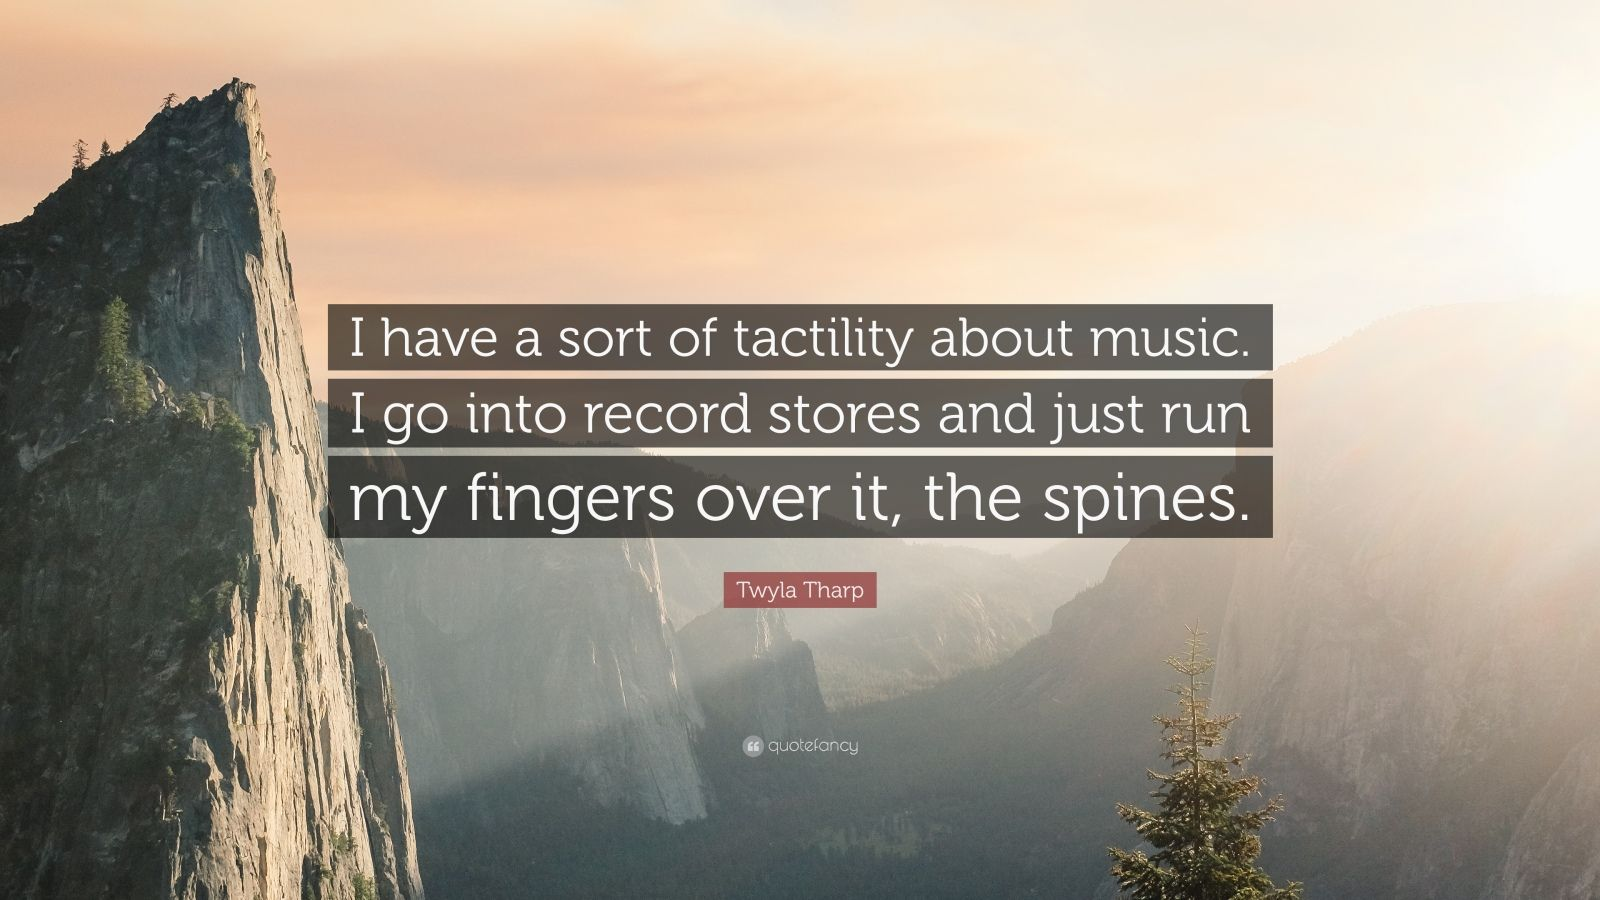 """Twyla Tharp Quote: """"I have a sort of tactility about music. I go into record stores and just run my fingers over it, the spines."""""""